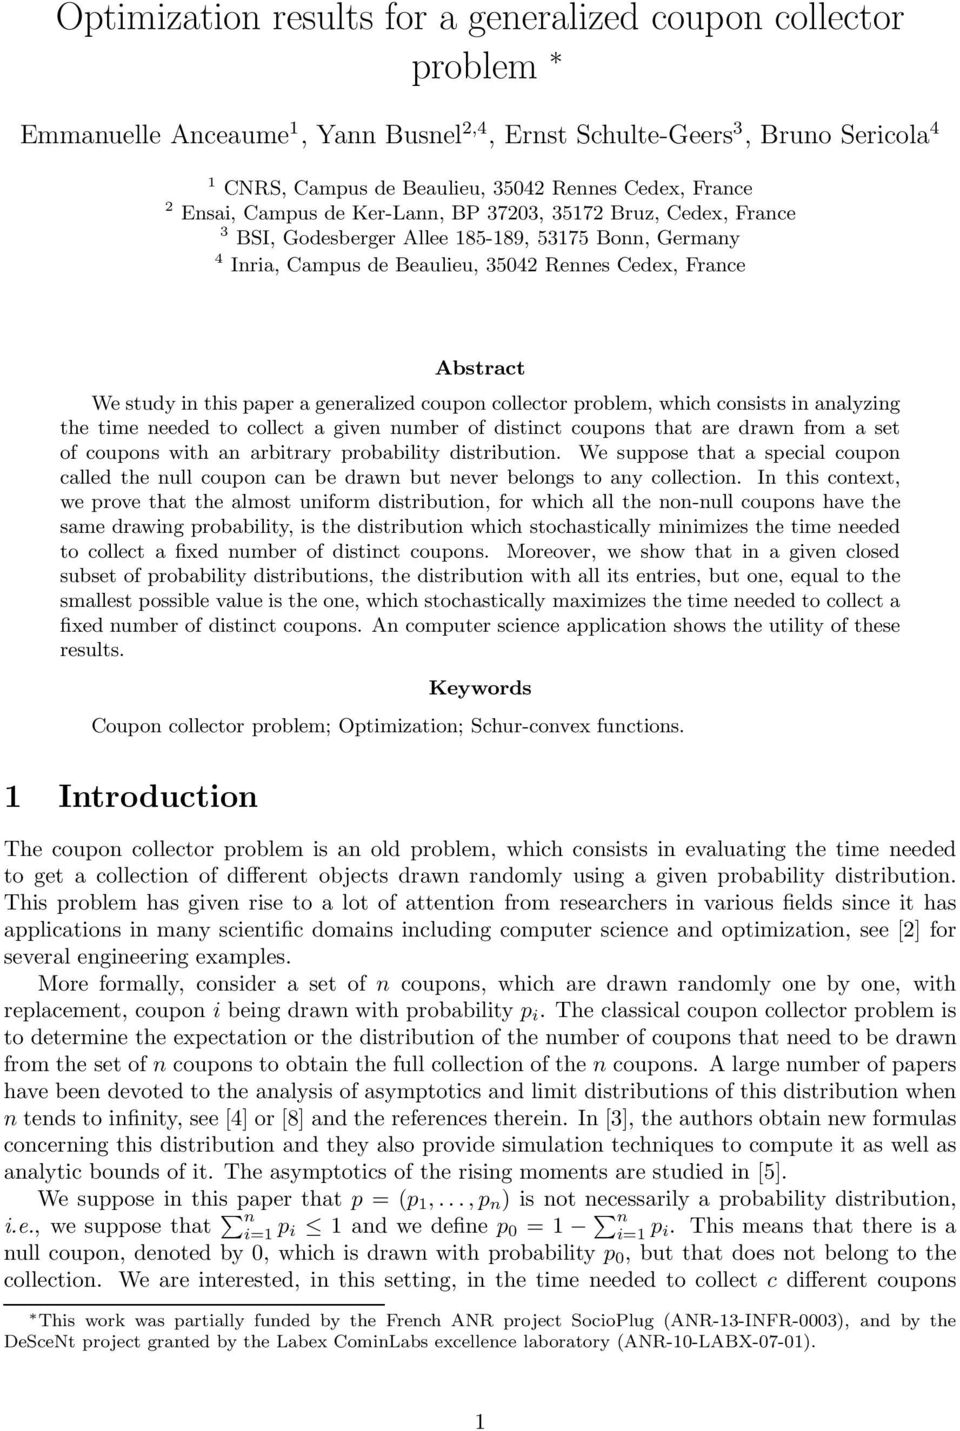 Optimization Results For A Generalized Coupon Collector Problem Pdf Free Download